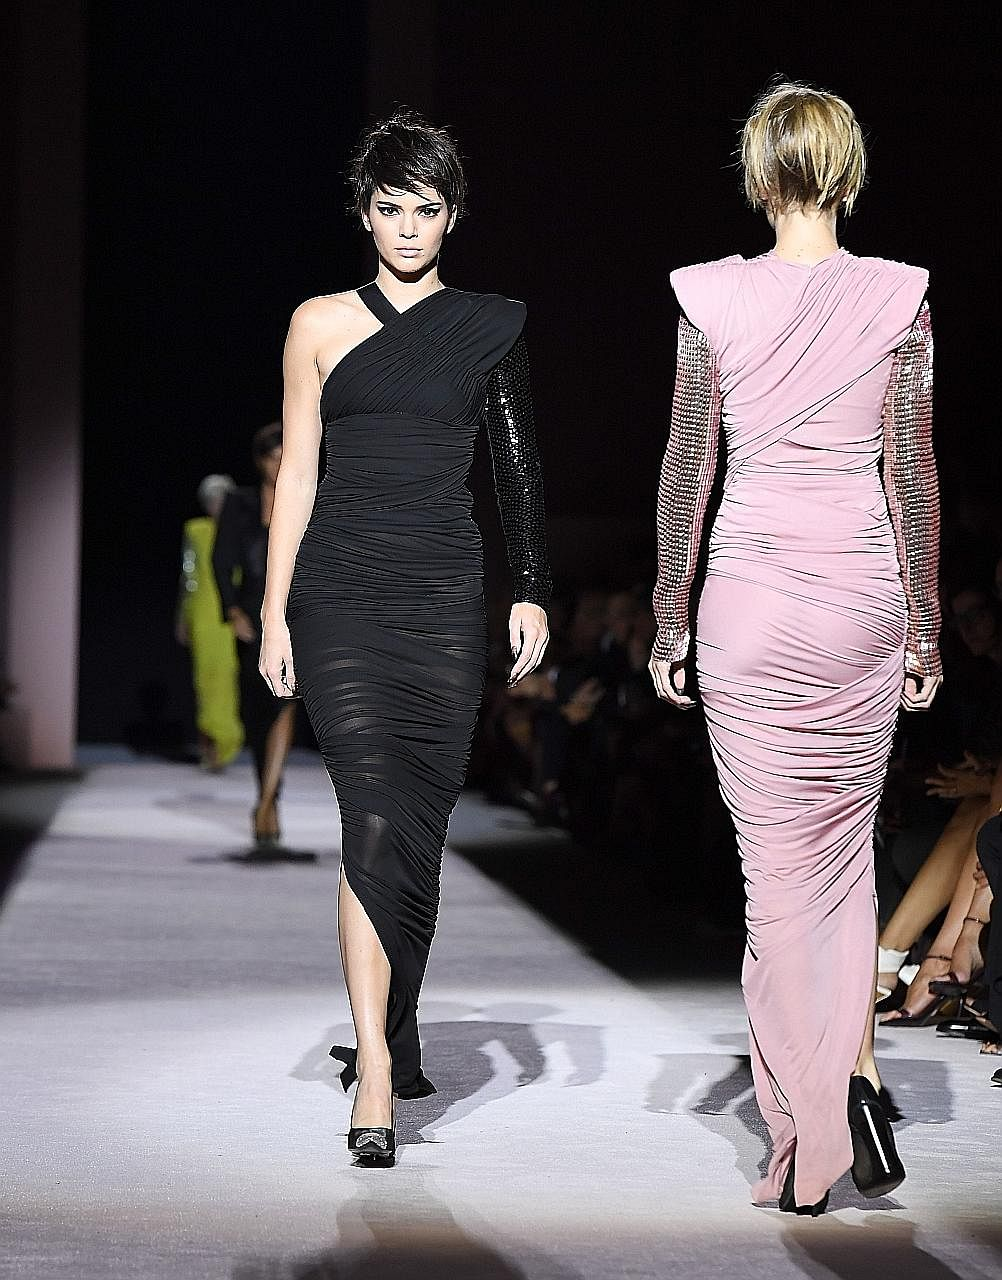 Model Kendall Jenner (above left) on the runway for the Tom Ford show.